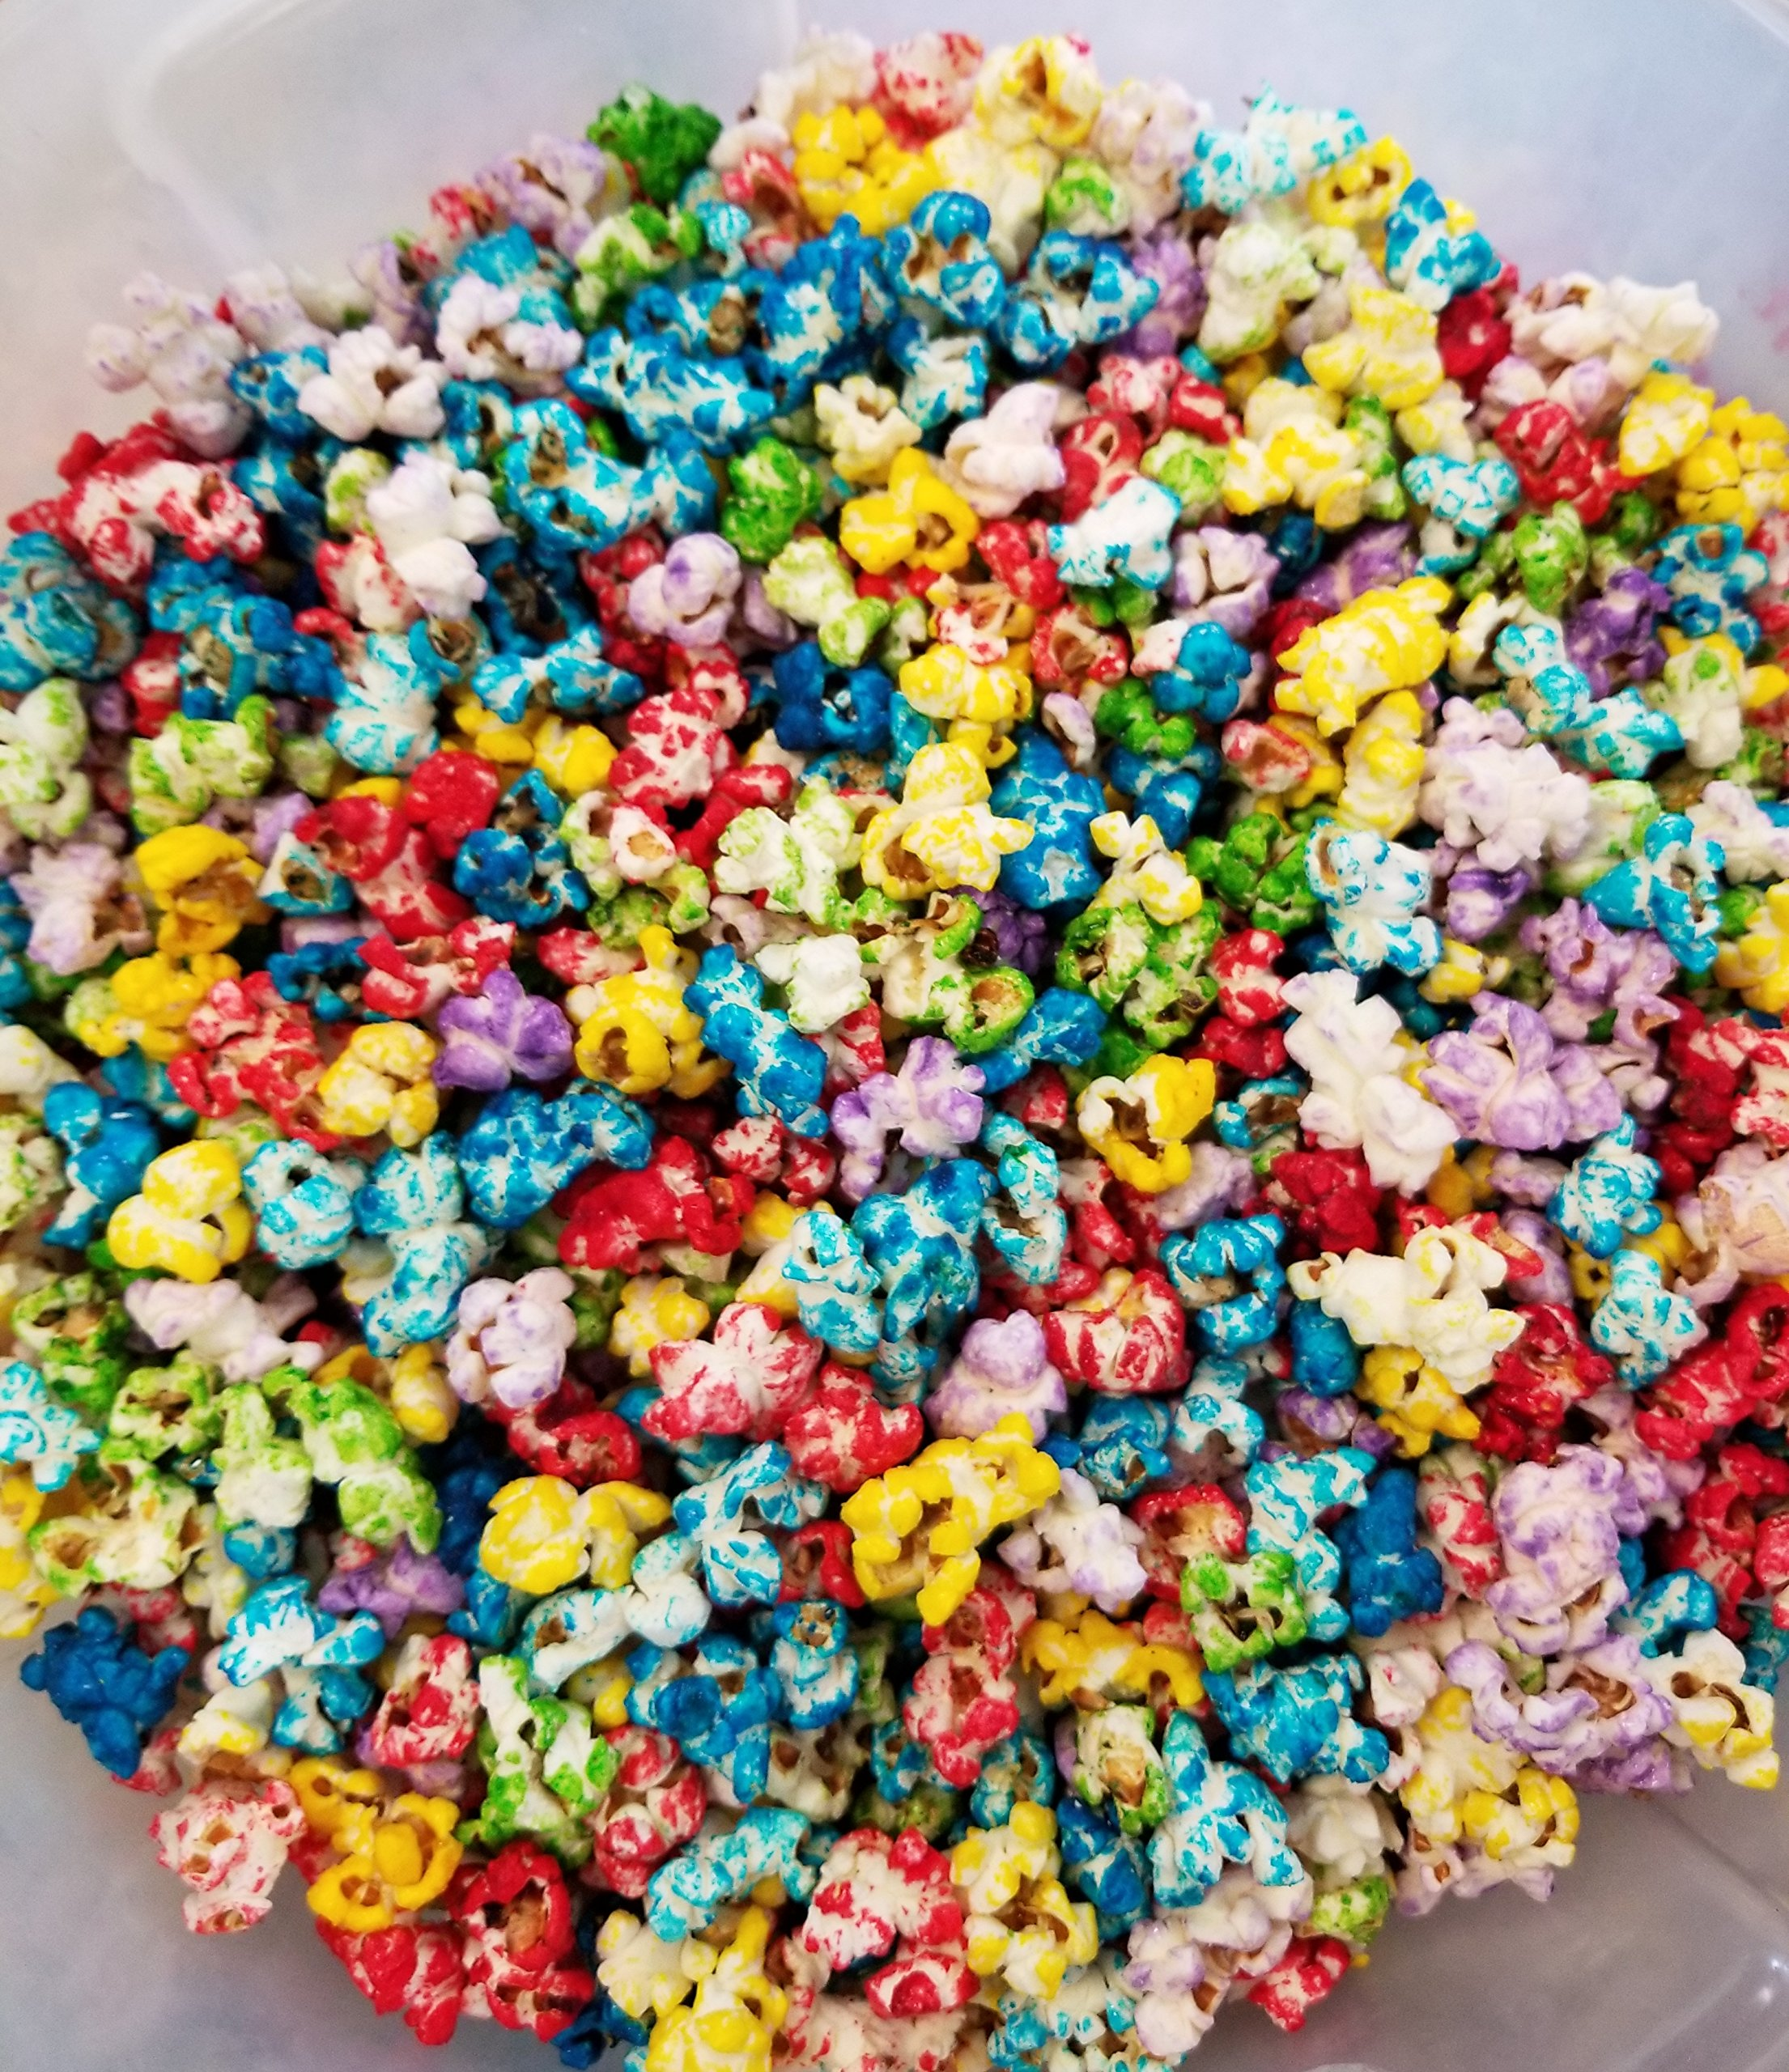 Uncle Pops Rainbow Popcorn - 5 Gallons - 60 OZ of Rainbow - Stays FRESH in Resealable Bag